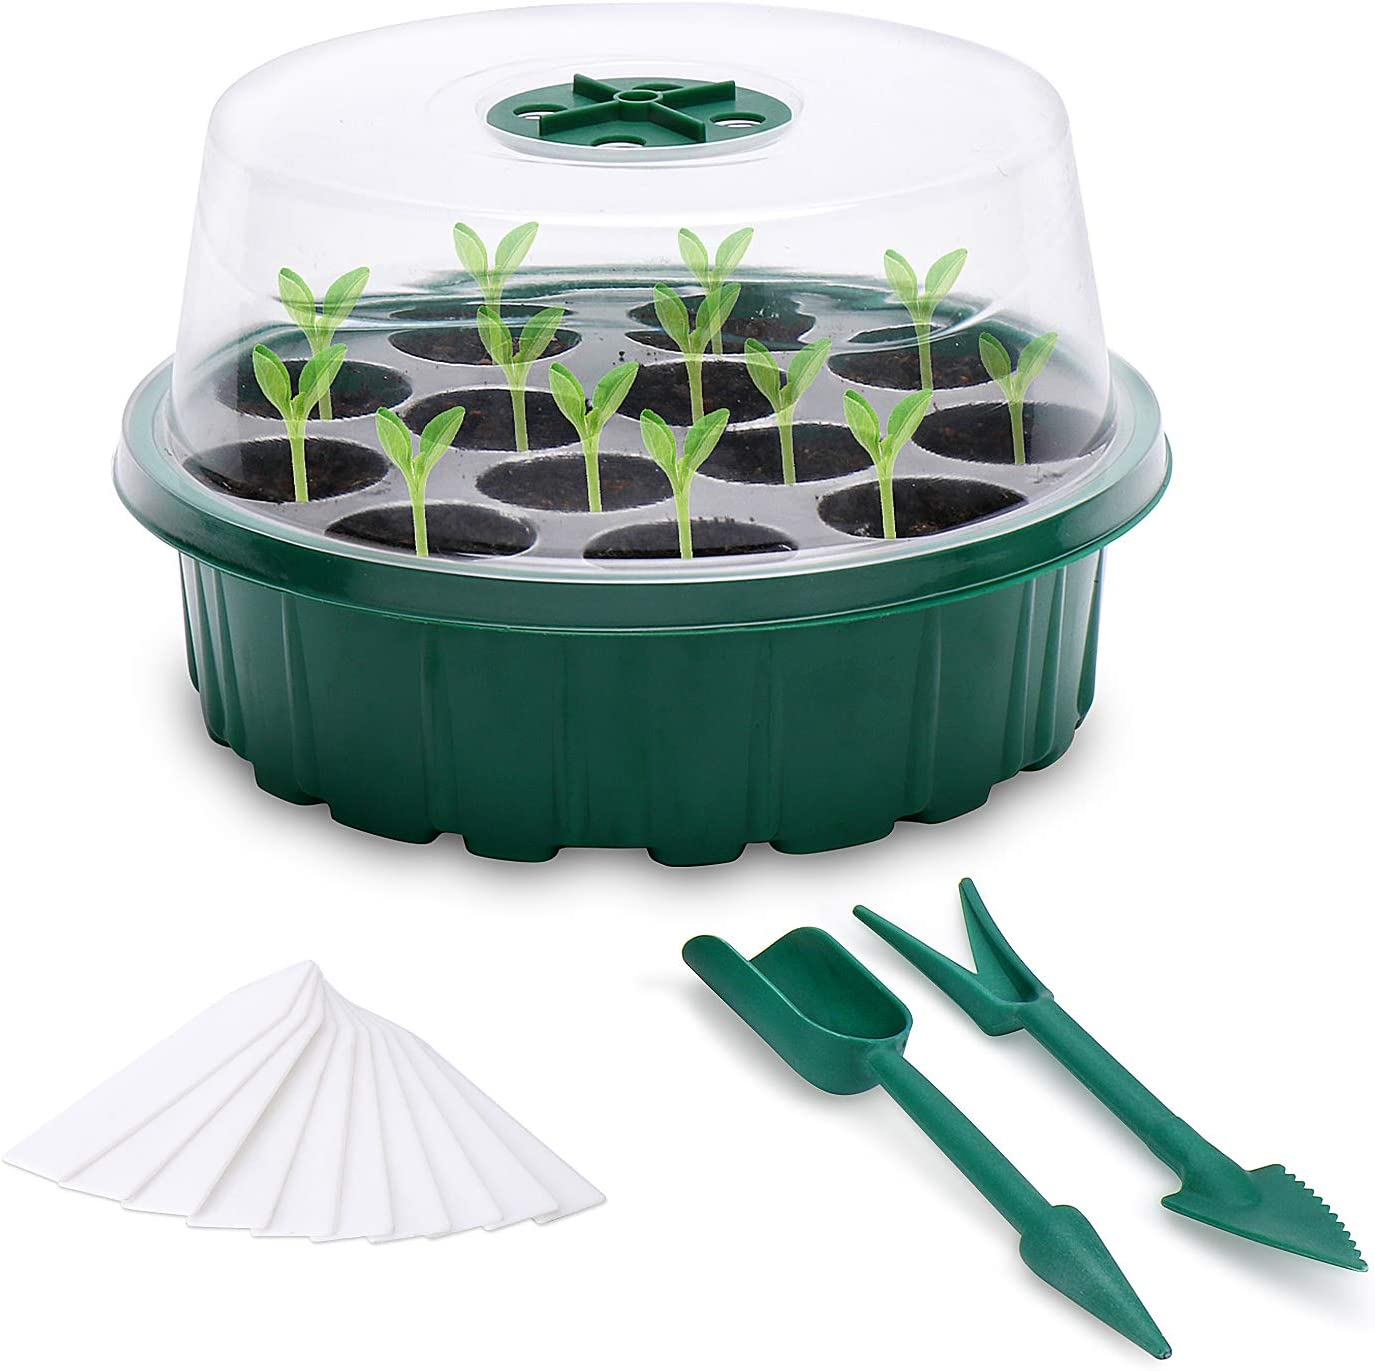 Araktin 10 Pack- Round Seed Starter Tray, Humidity Vented Domes and Transparent Seedling Tray Grow Germination Kit with Drain Holes, for Seeds Growing Starting (Green)